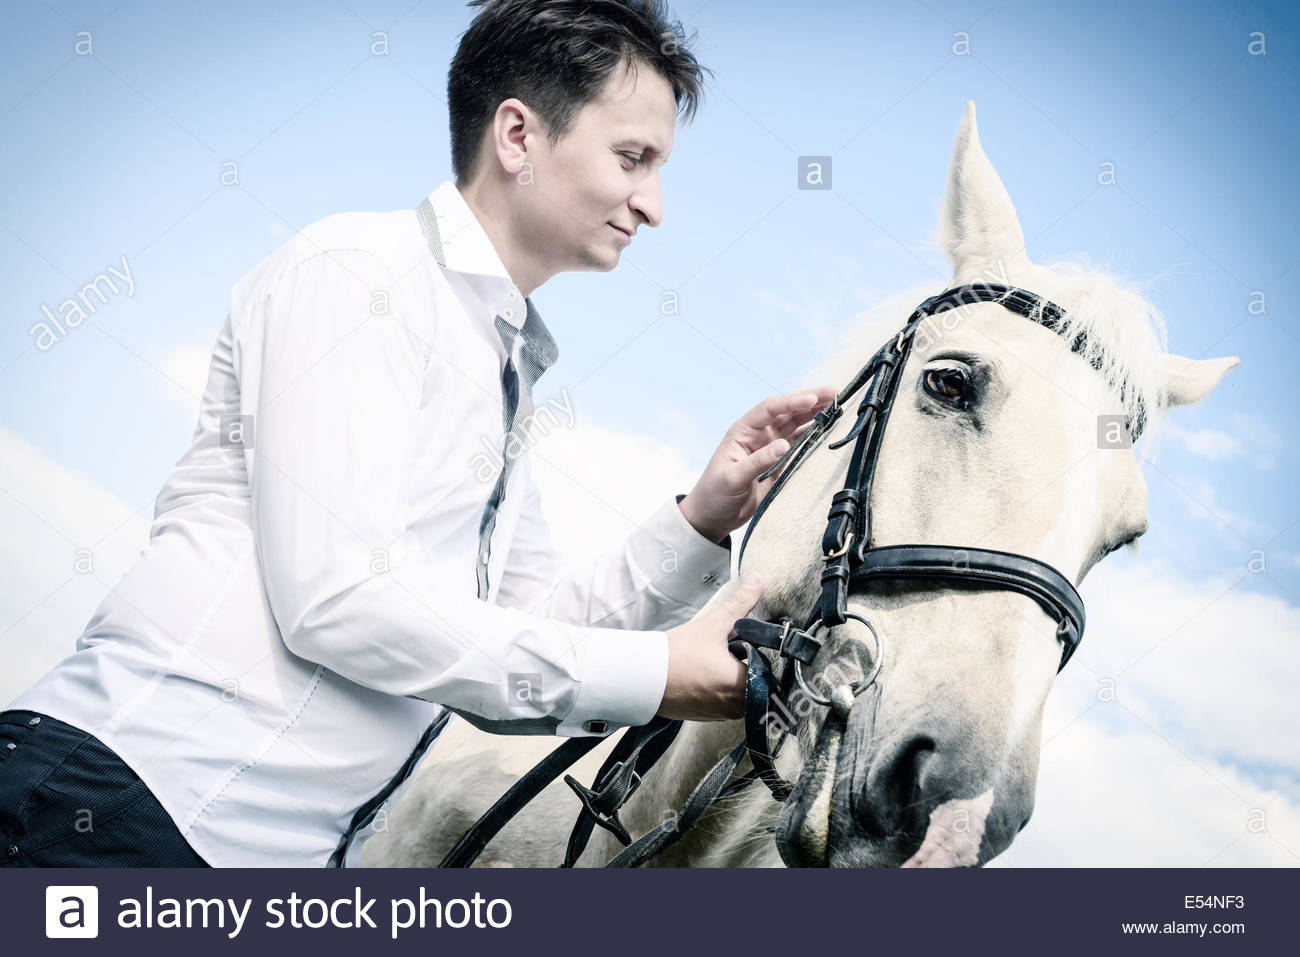 unusual groom at a wedding on white horse outdoors - Stock Image